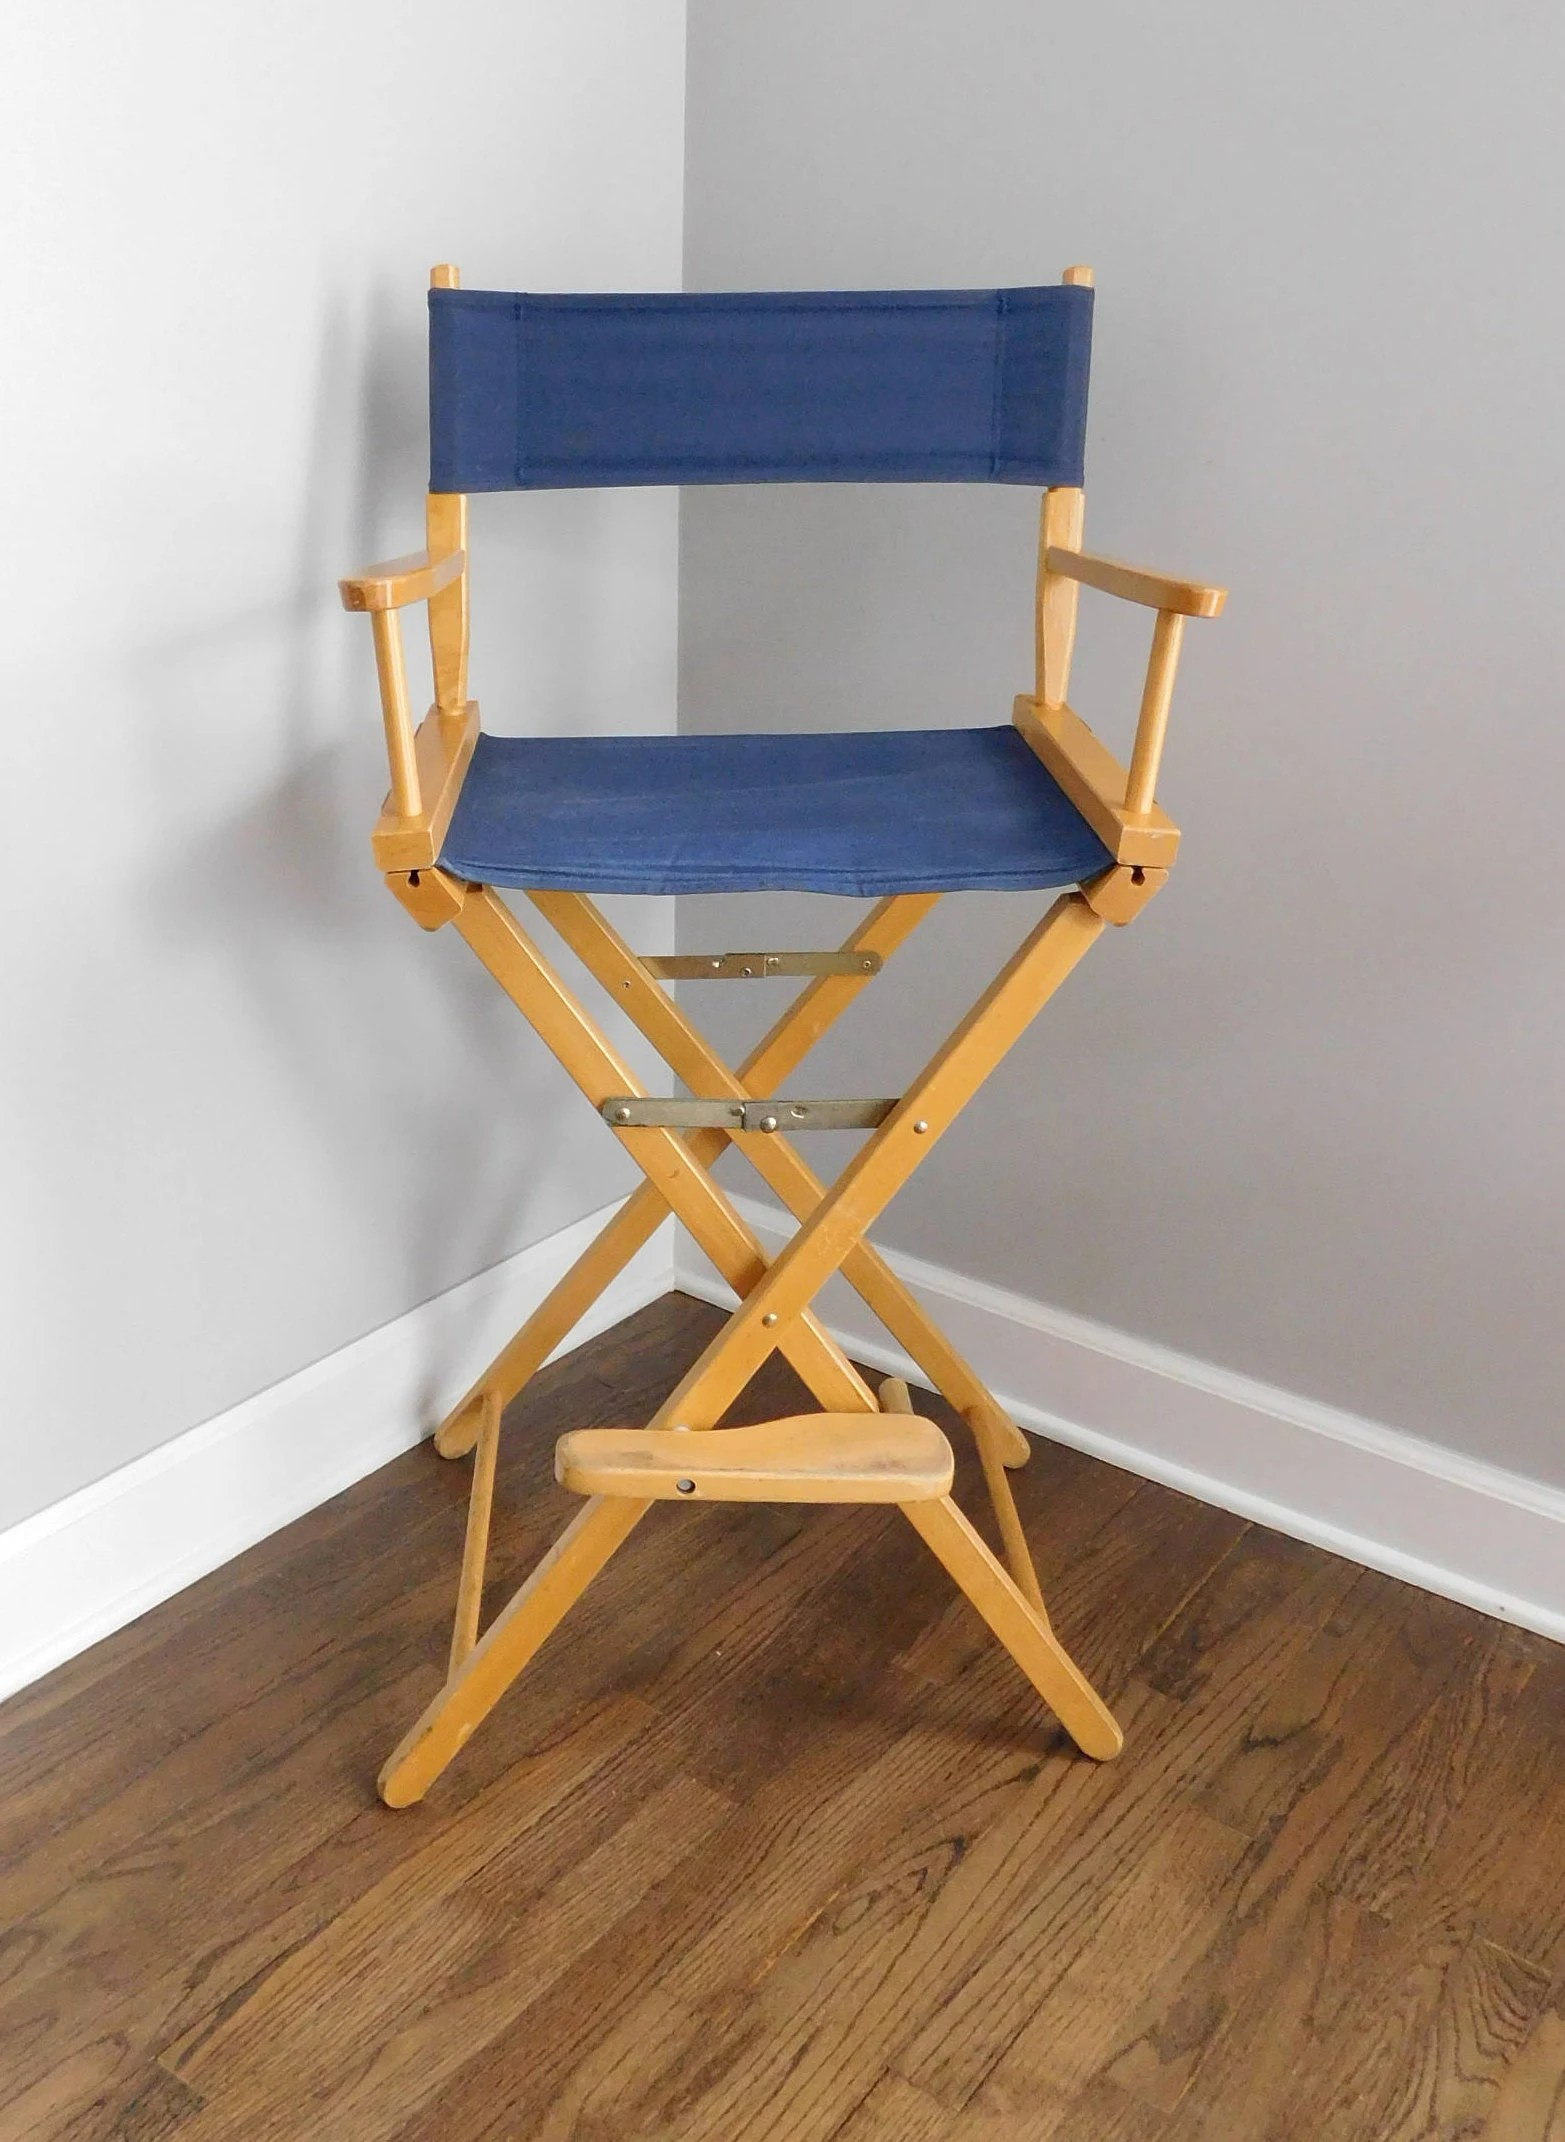 Folding Director Chair Vintage Tlt Inc Directors Barstool Chair Mid Century Telescope Folding Directors Chair Fabric Barstool